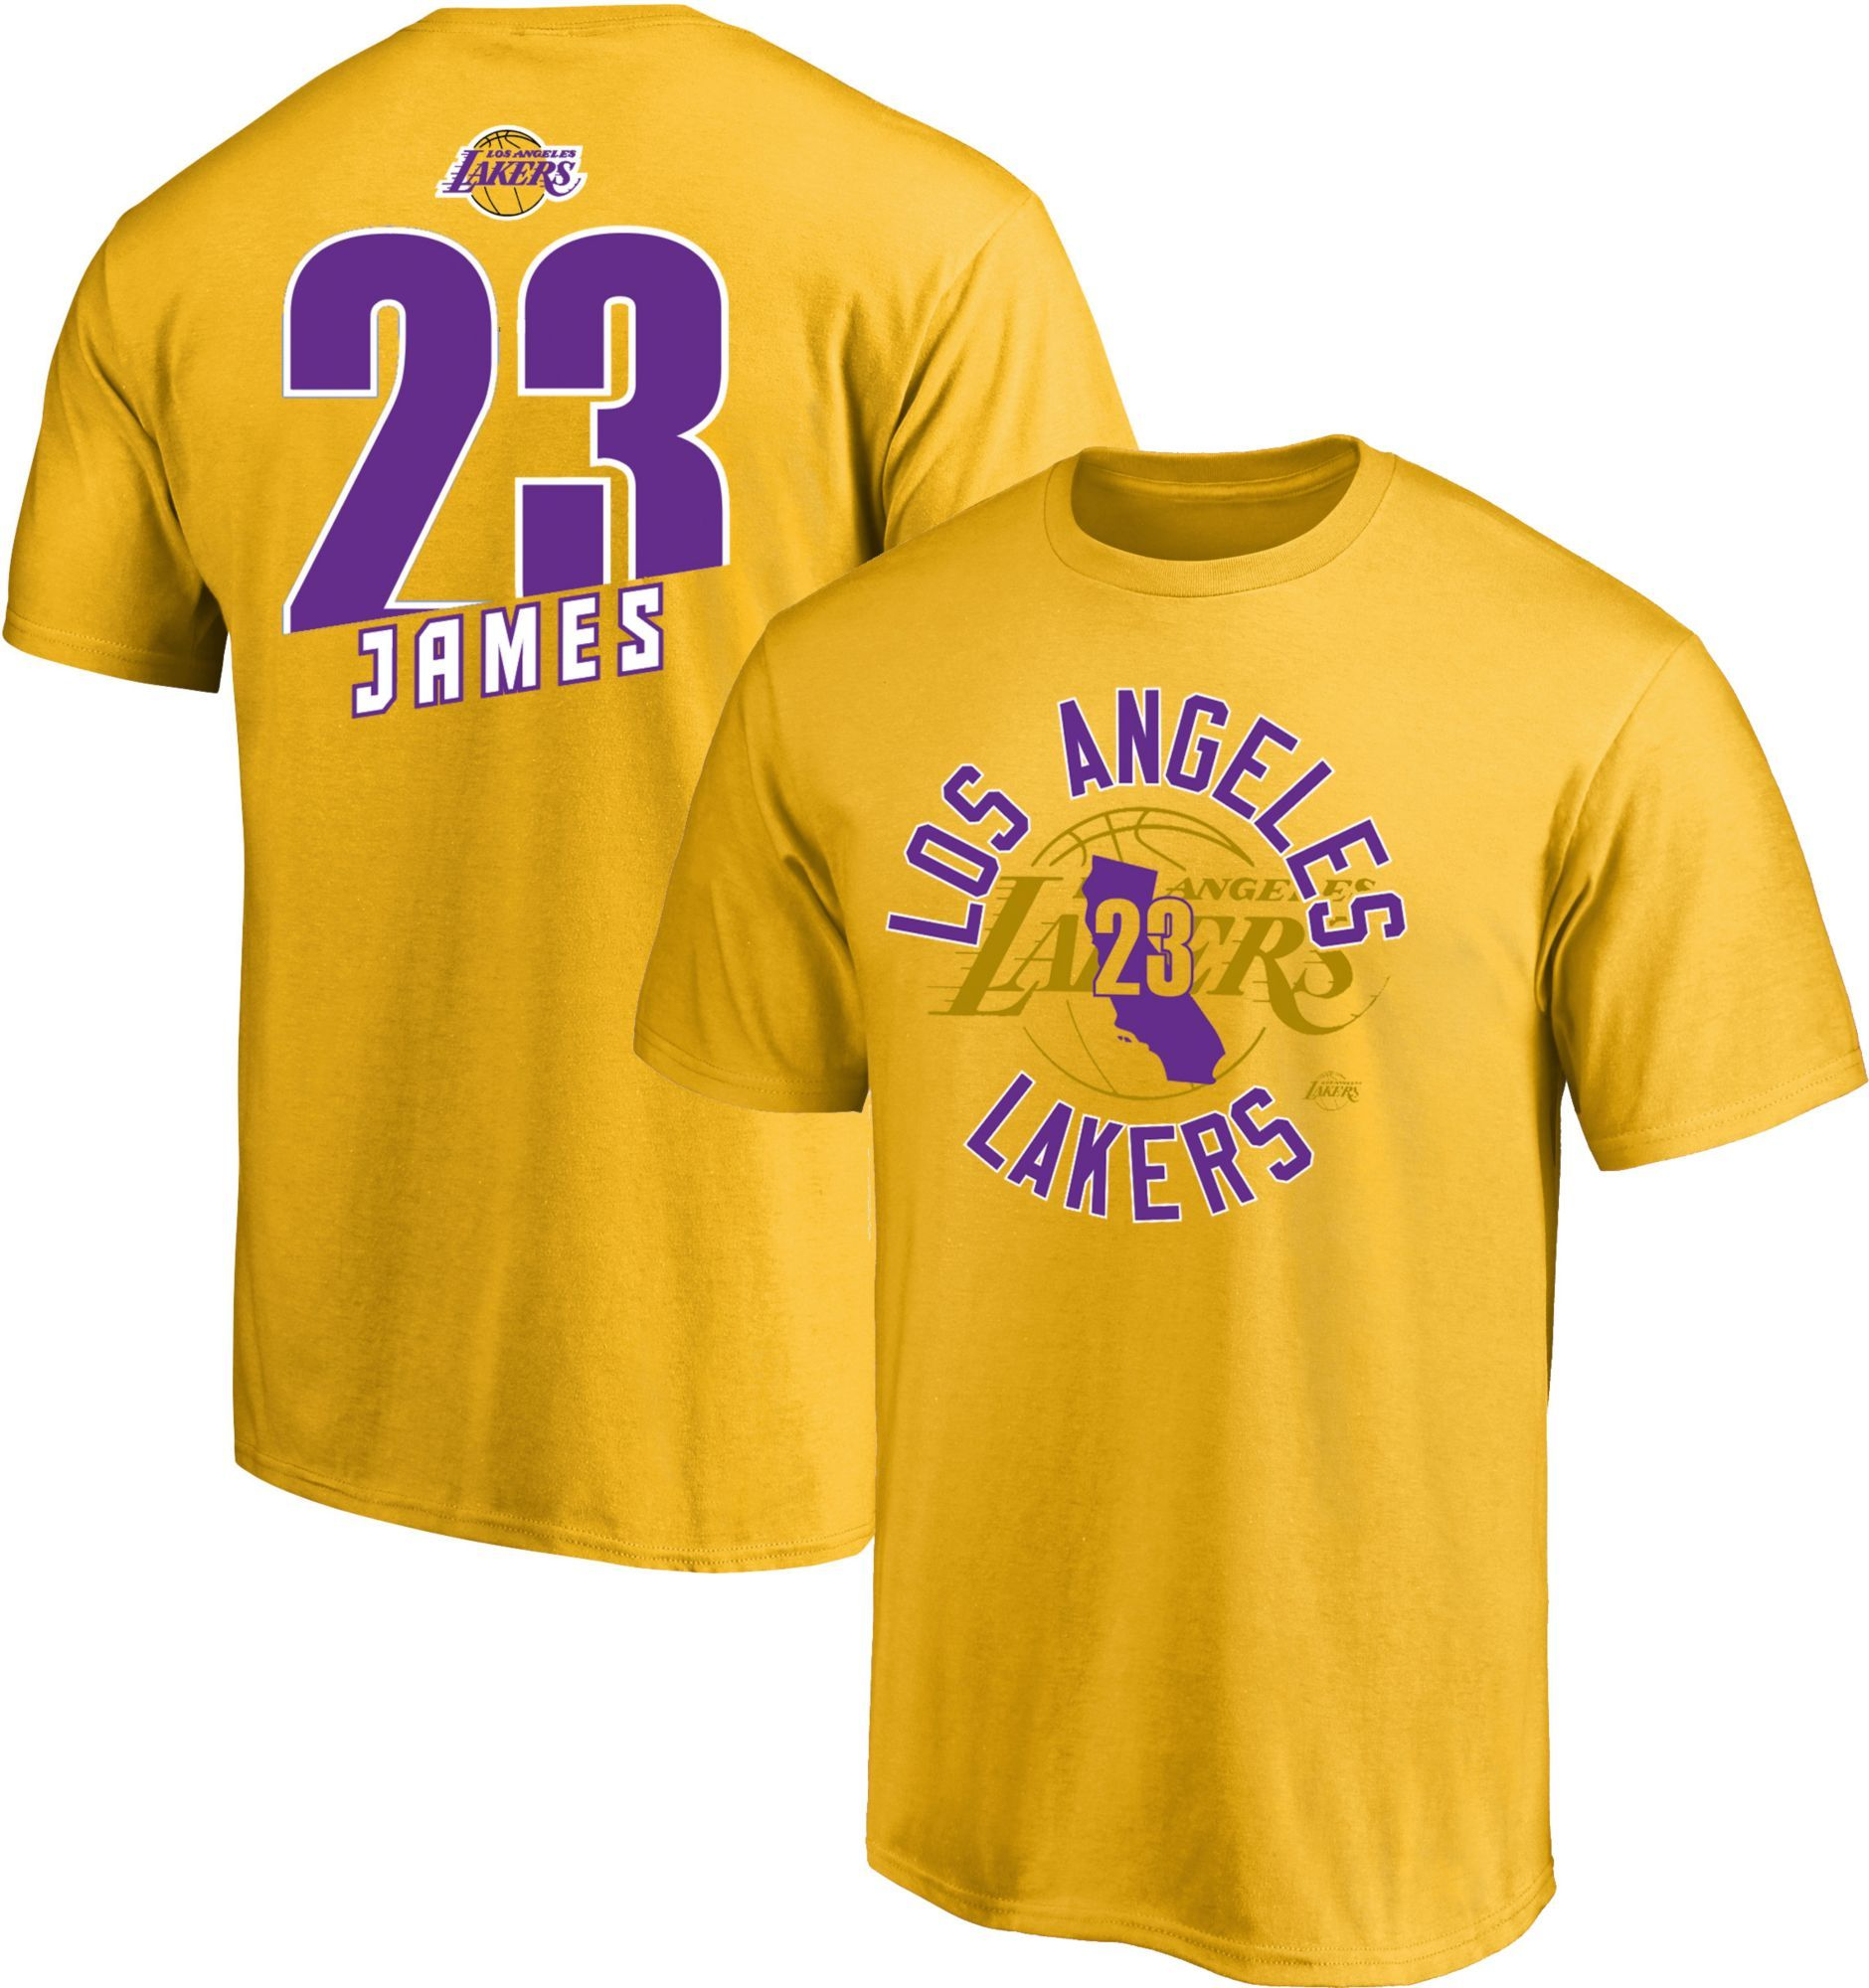 best website 1c5a5 244a7 Majestic Men's Los Angeles Lakers LeBron James #23 Gold T ...